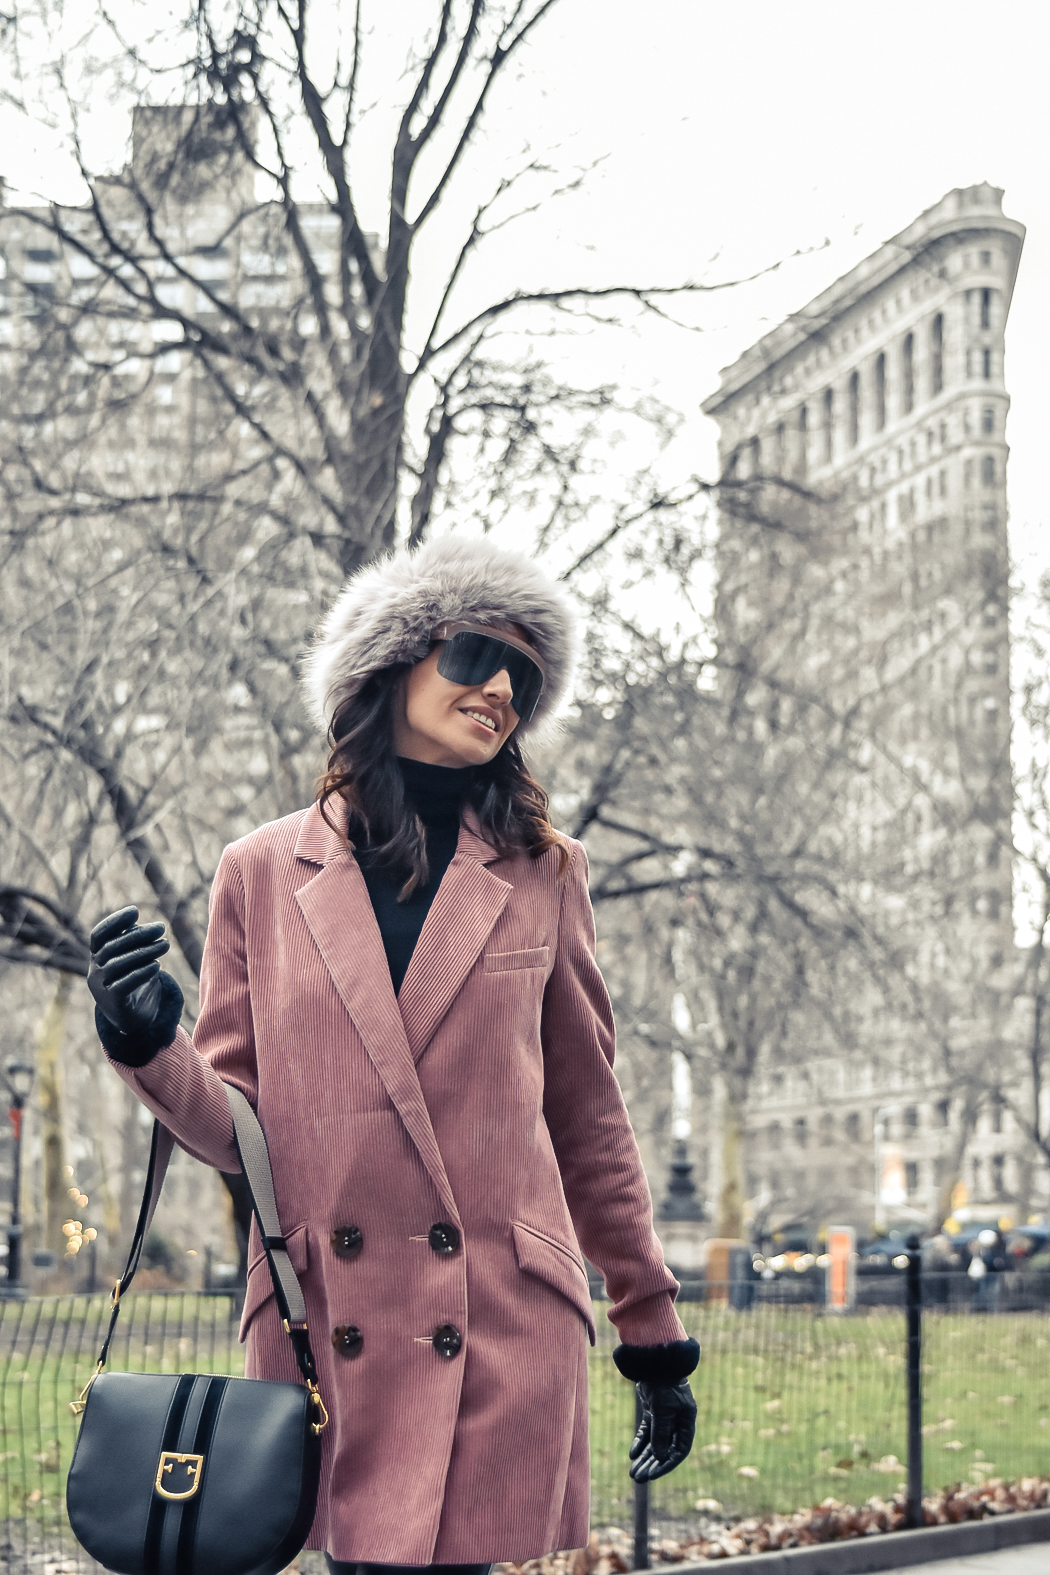 el-blog-de-silvia-look-invernal-nueva-york-02